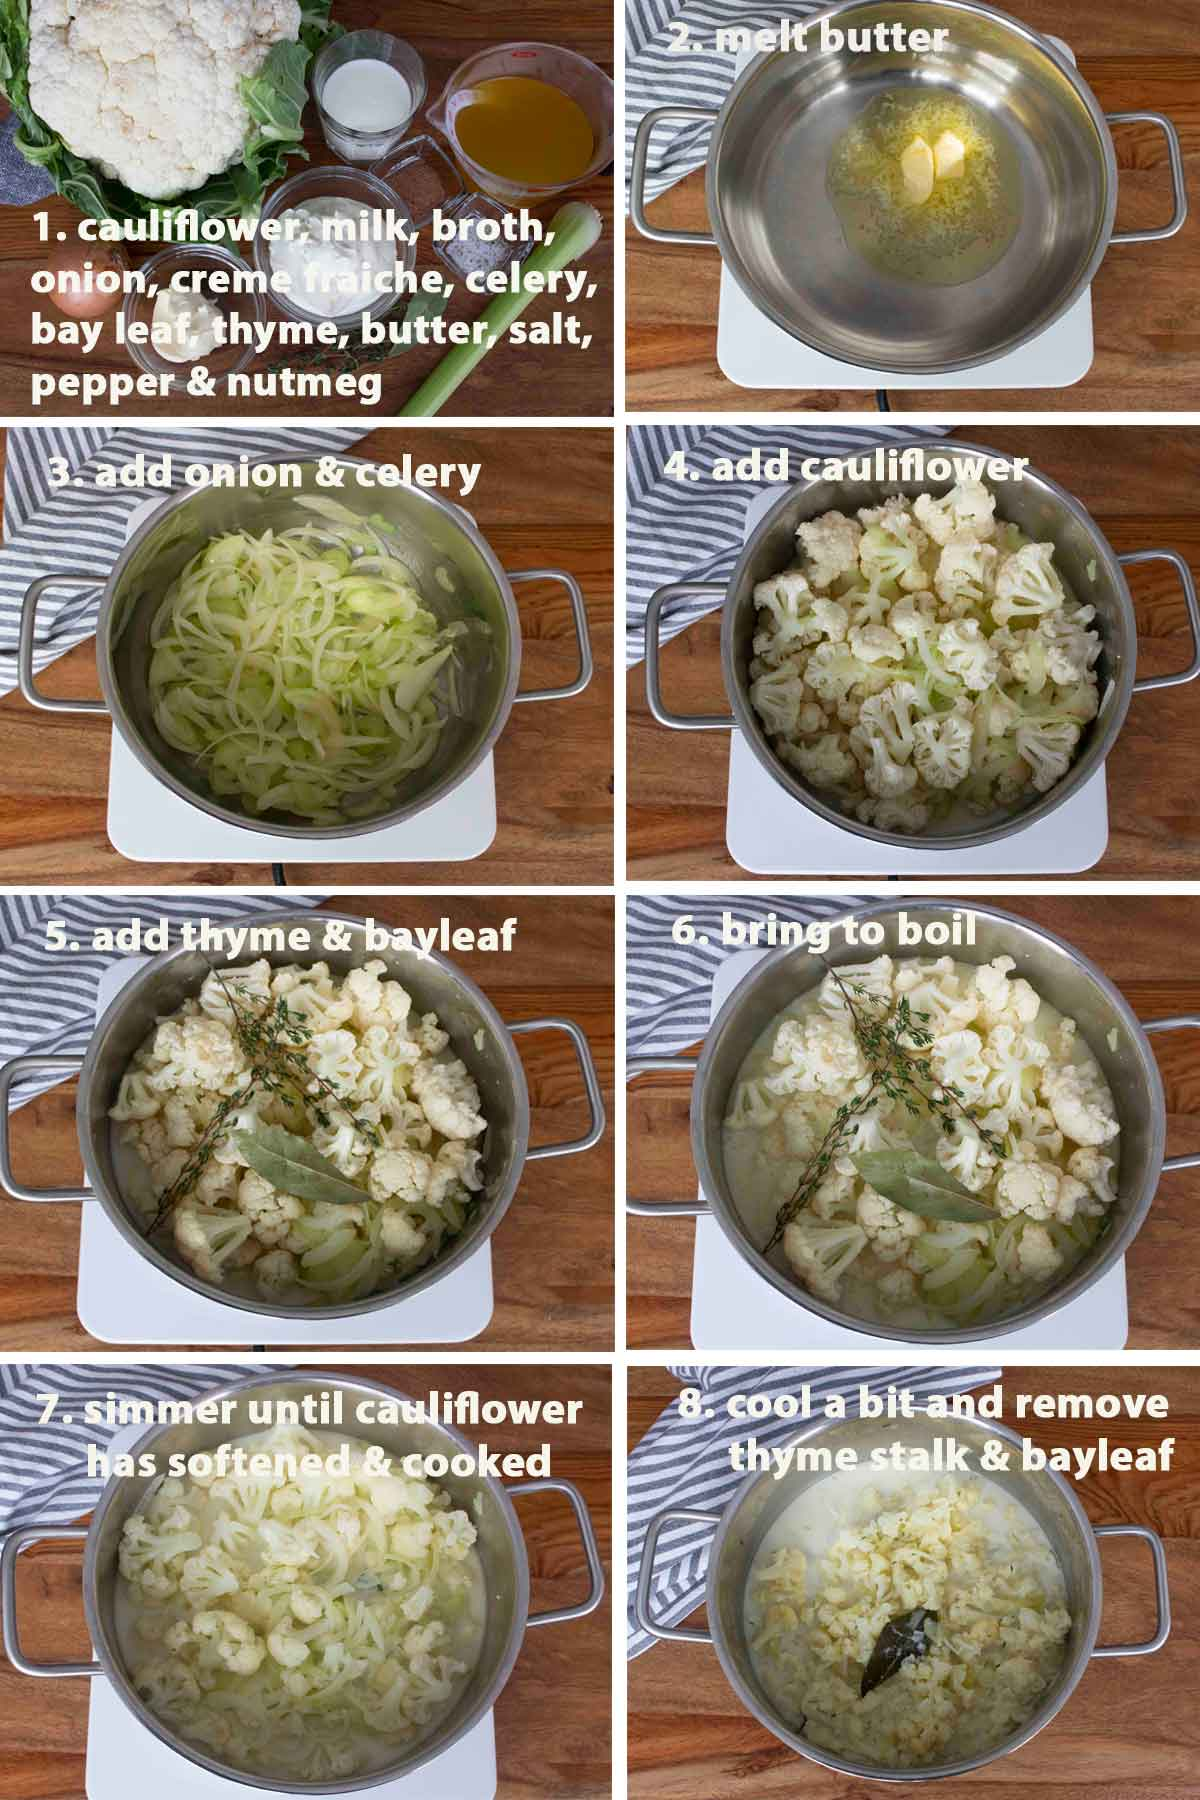 Collage of images showing the step by step process on how to make French Cauliflower Soup, Part 1